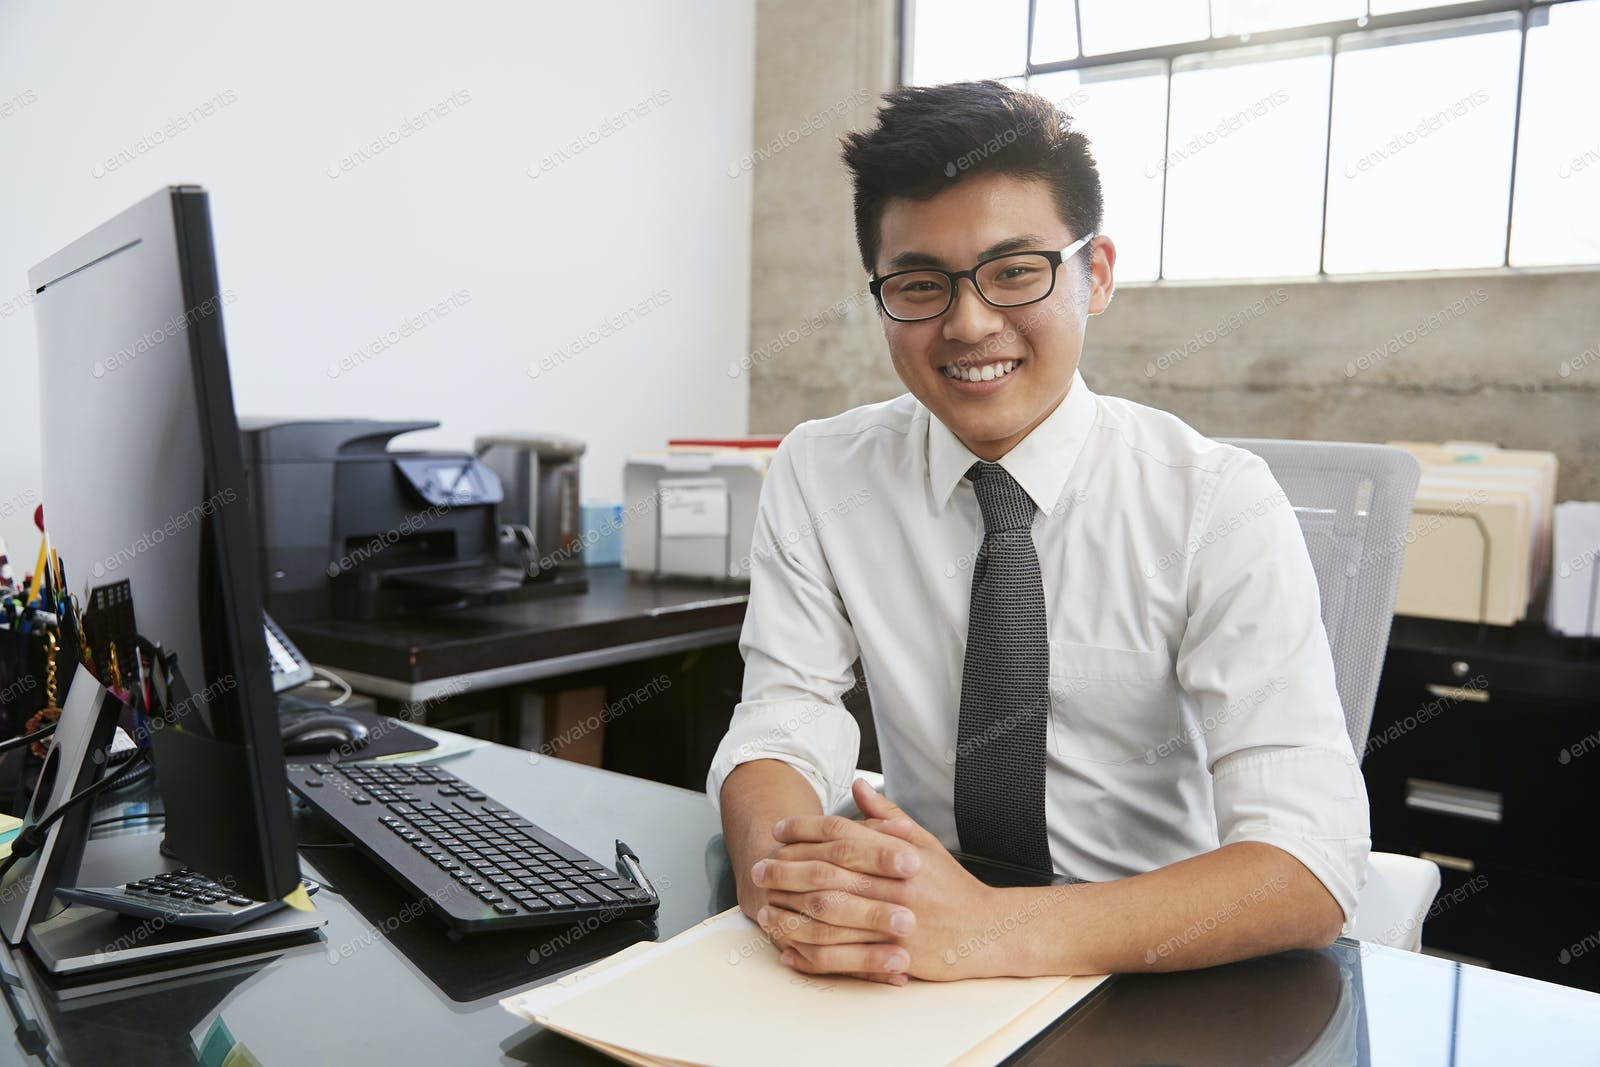 Young Asian male professional at desk smiling to camera photo by  monkeybusiness on Envato Elements